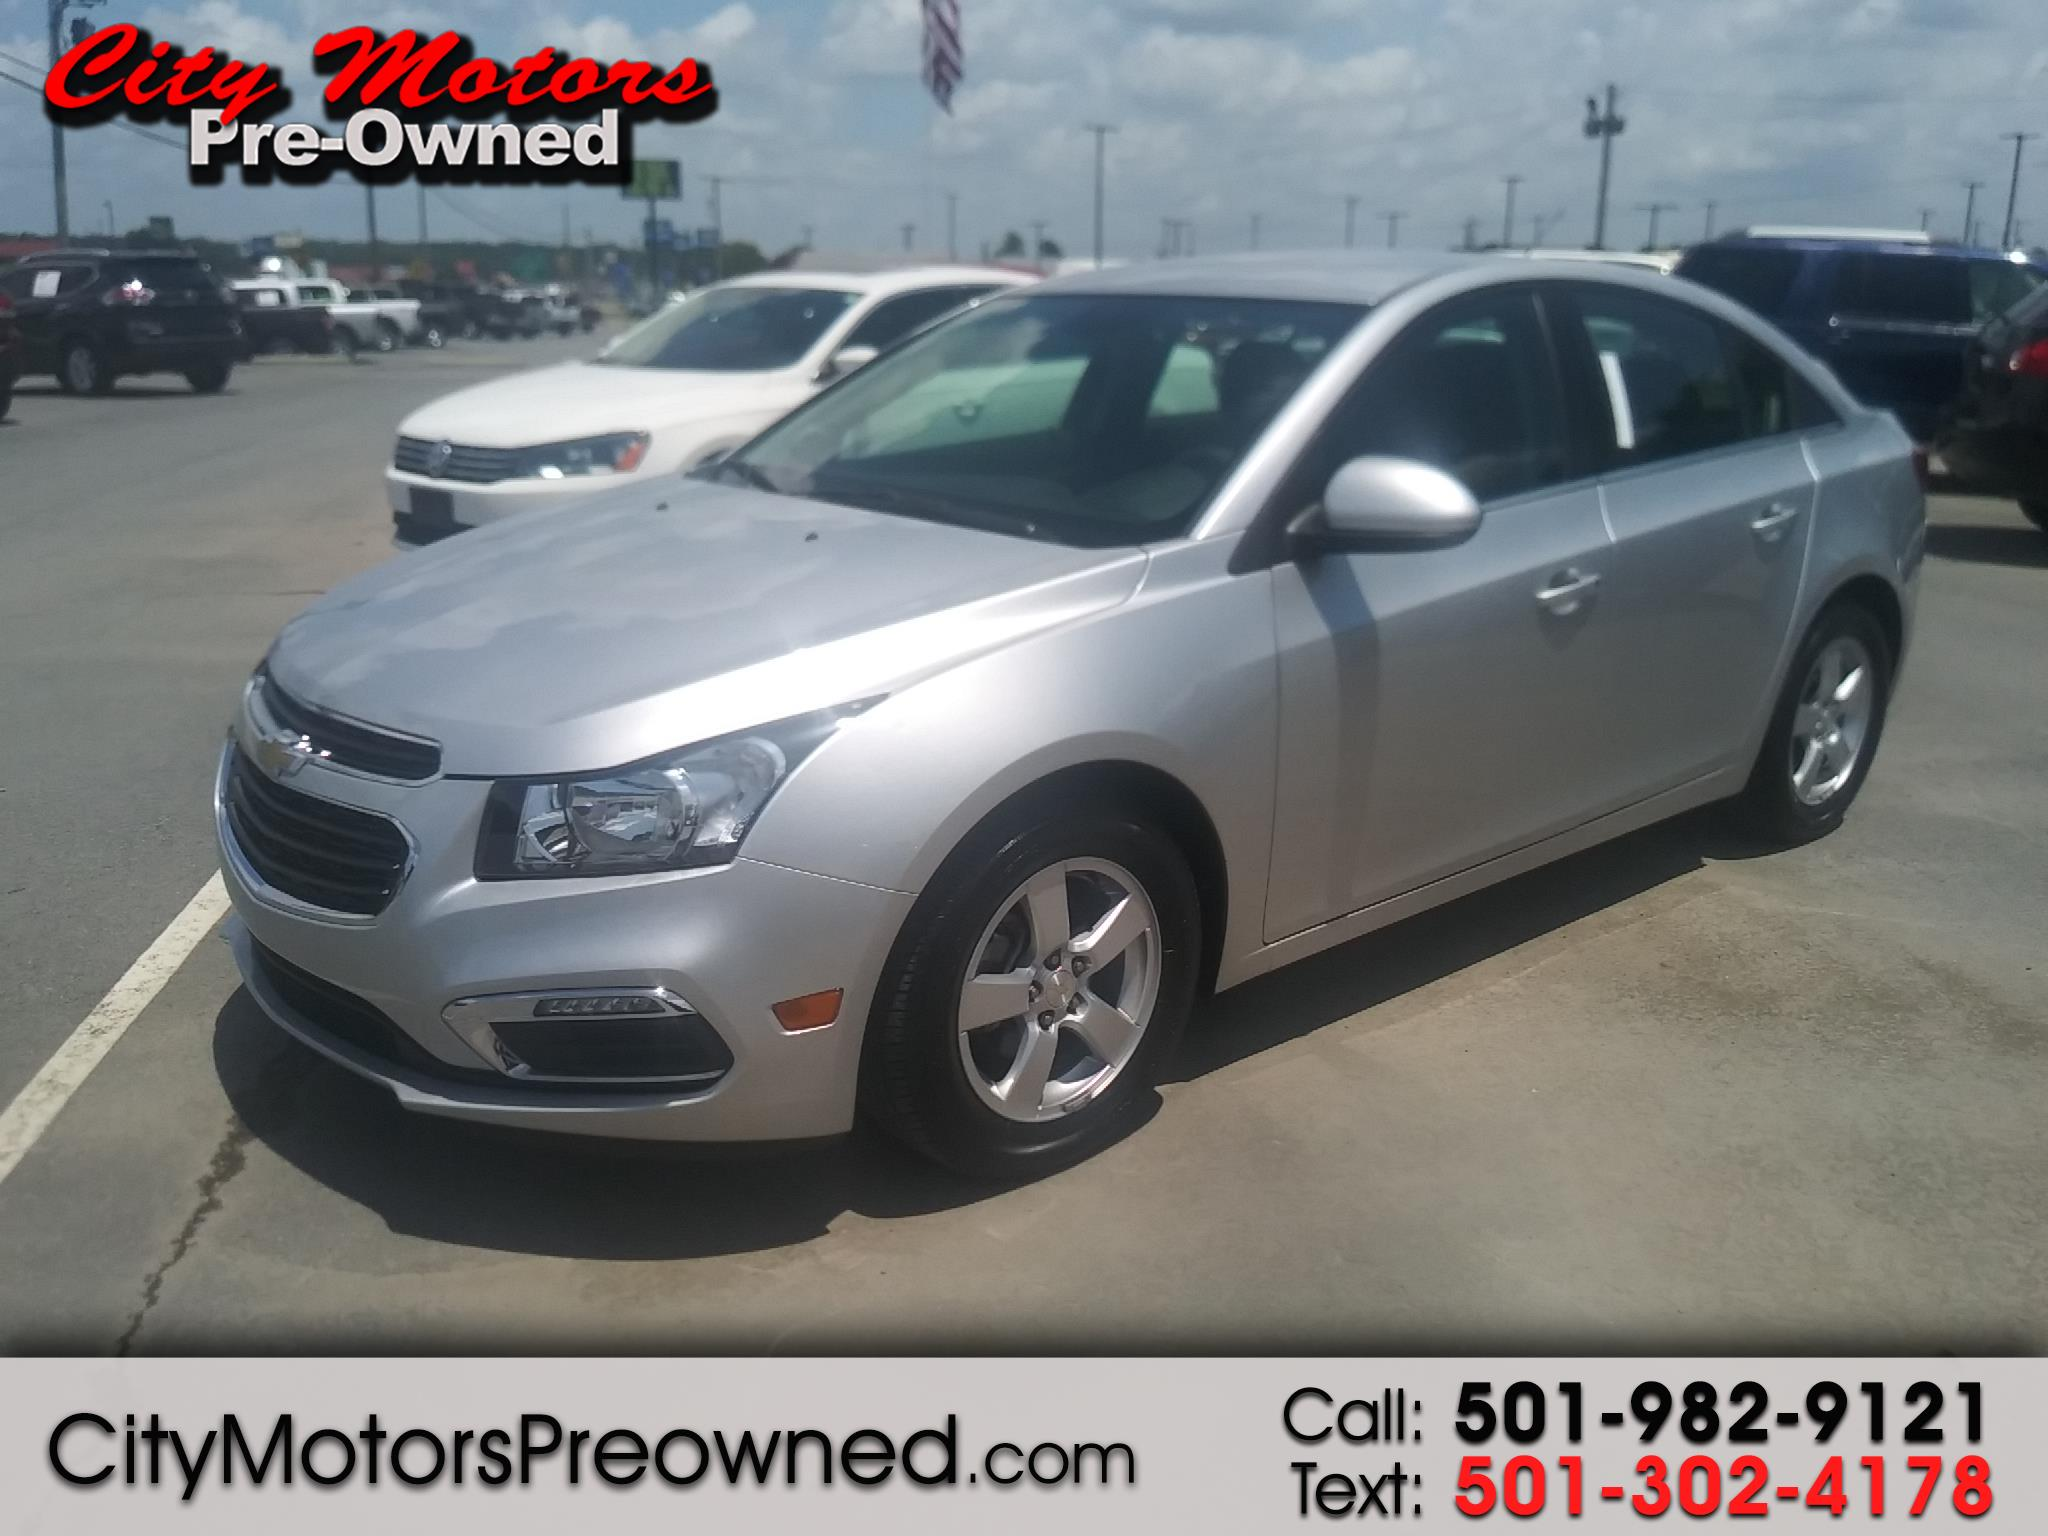 2016 Chevrolet Cruze Limited 4dr Sdn Auto LT w/1LT